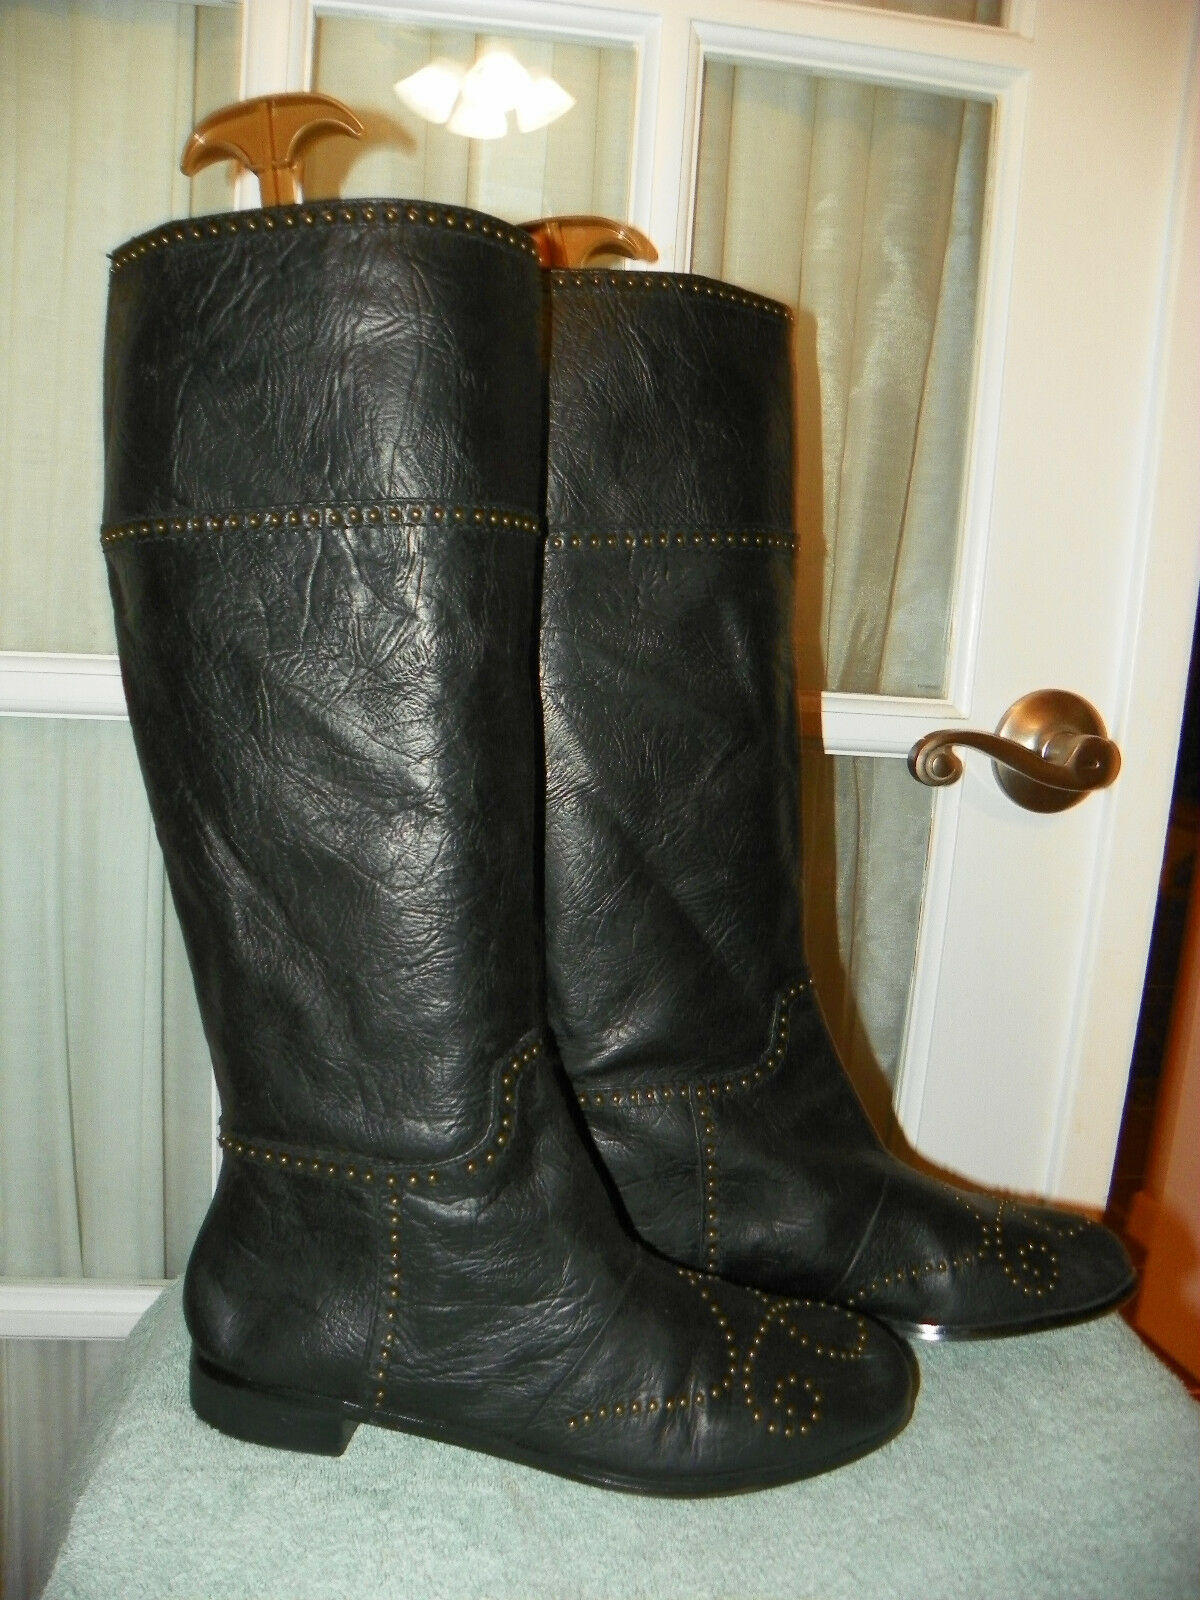 No 704 b. Jazz Black Studded Knee High Leather Boots Women's size EU 39.5 US 9.5